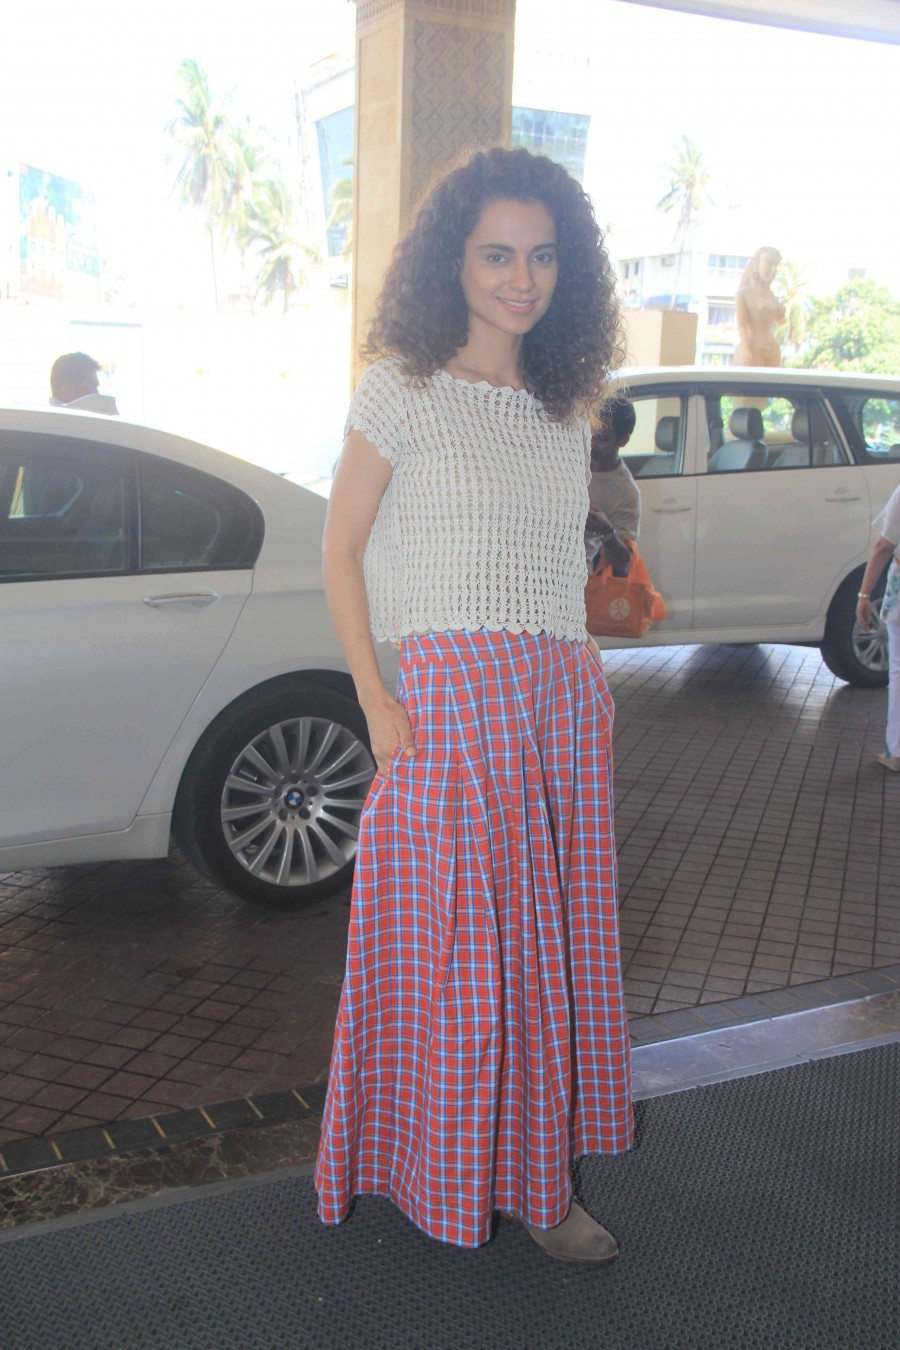 Kangana Ranaut,madhavan,Tanu Weds Manu Returns,Tanu Weds Manu Returns promotion